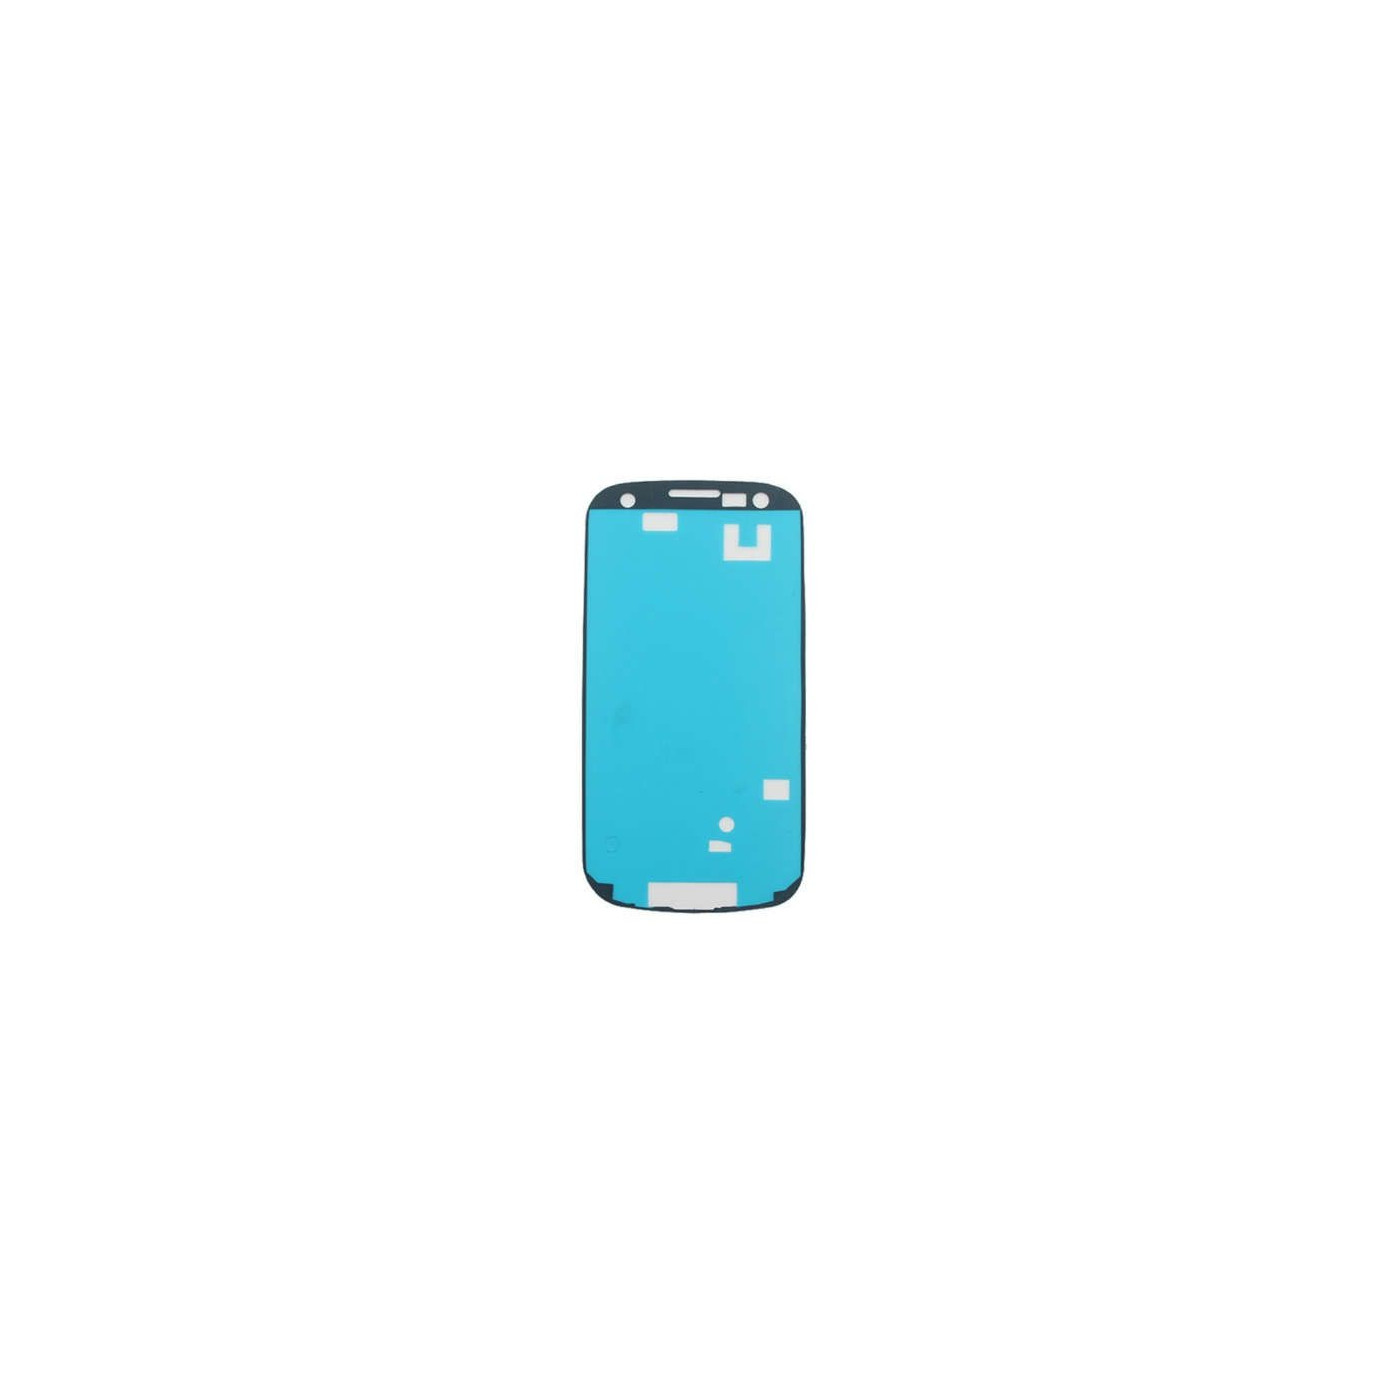 Biadesivo per vetro samsung galaxy s4 mini i9195 touch screen display adesivo